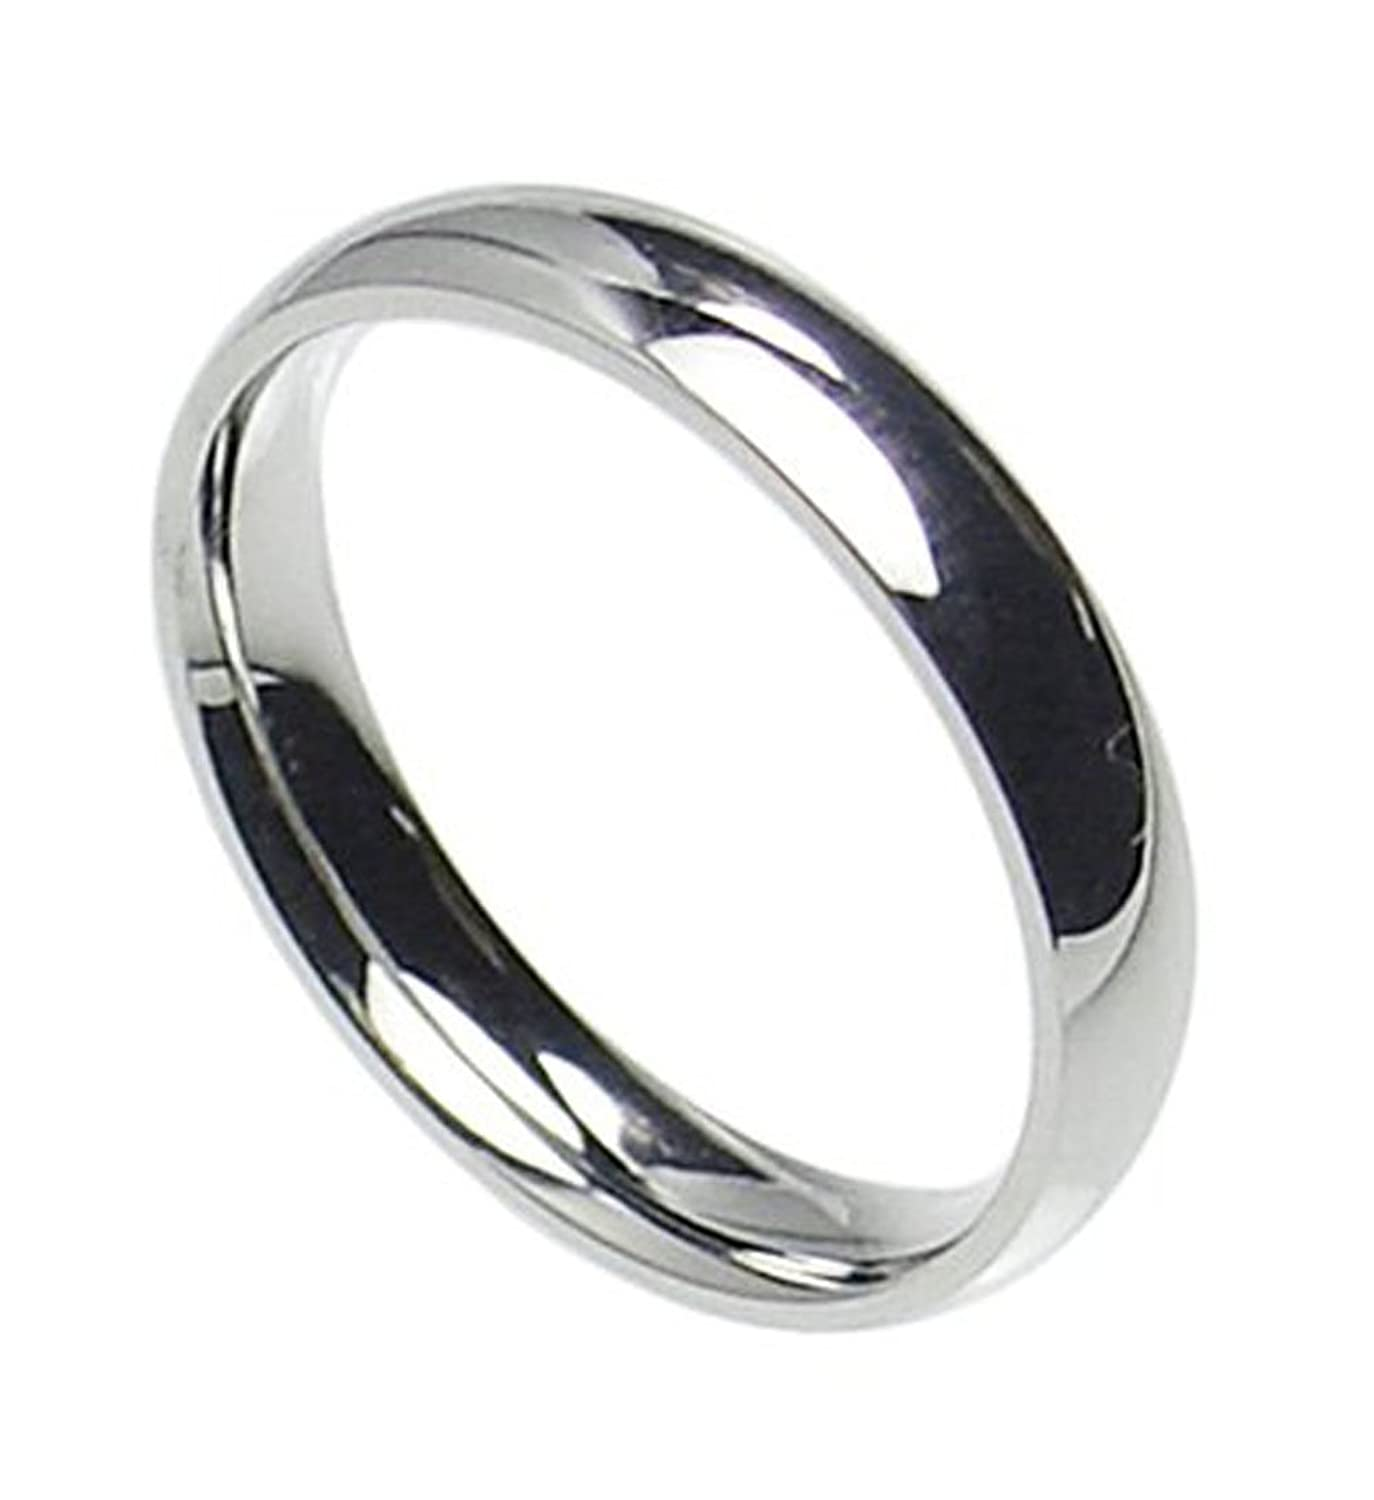 size comfort stainless plain com box steel dp gift band wedding comes rings fit ring with free amazon